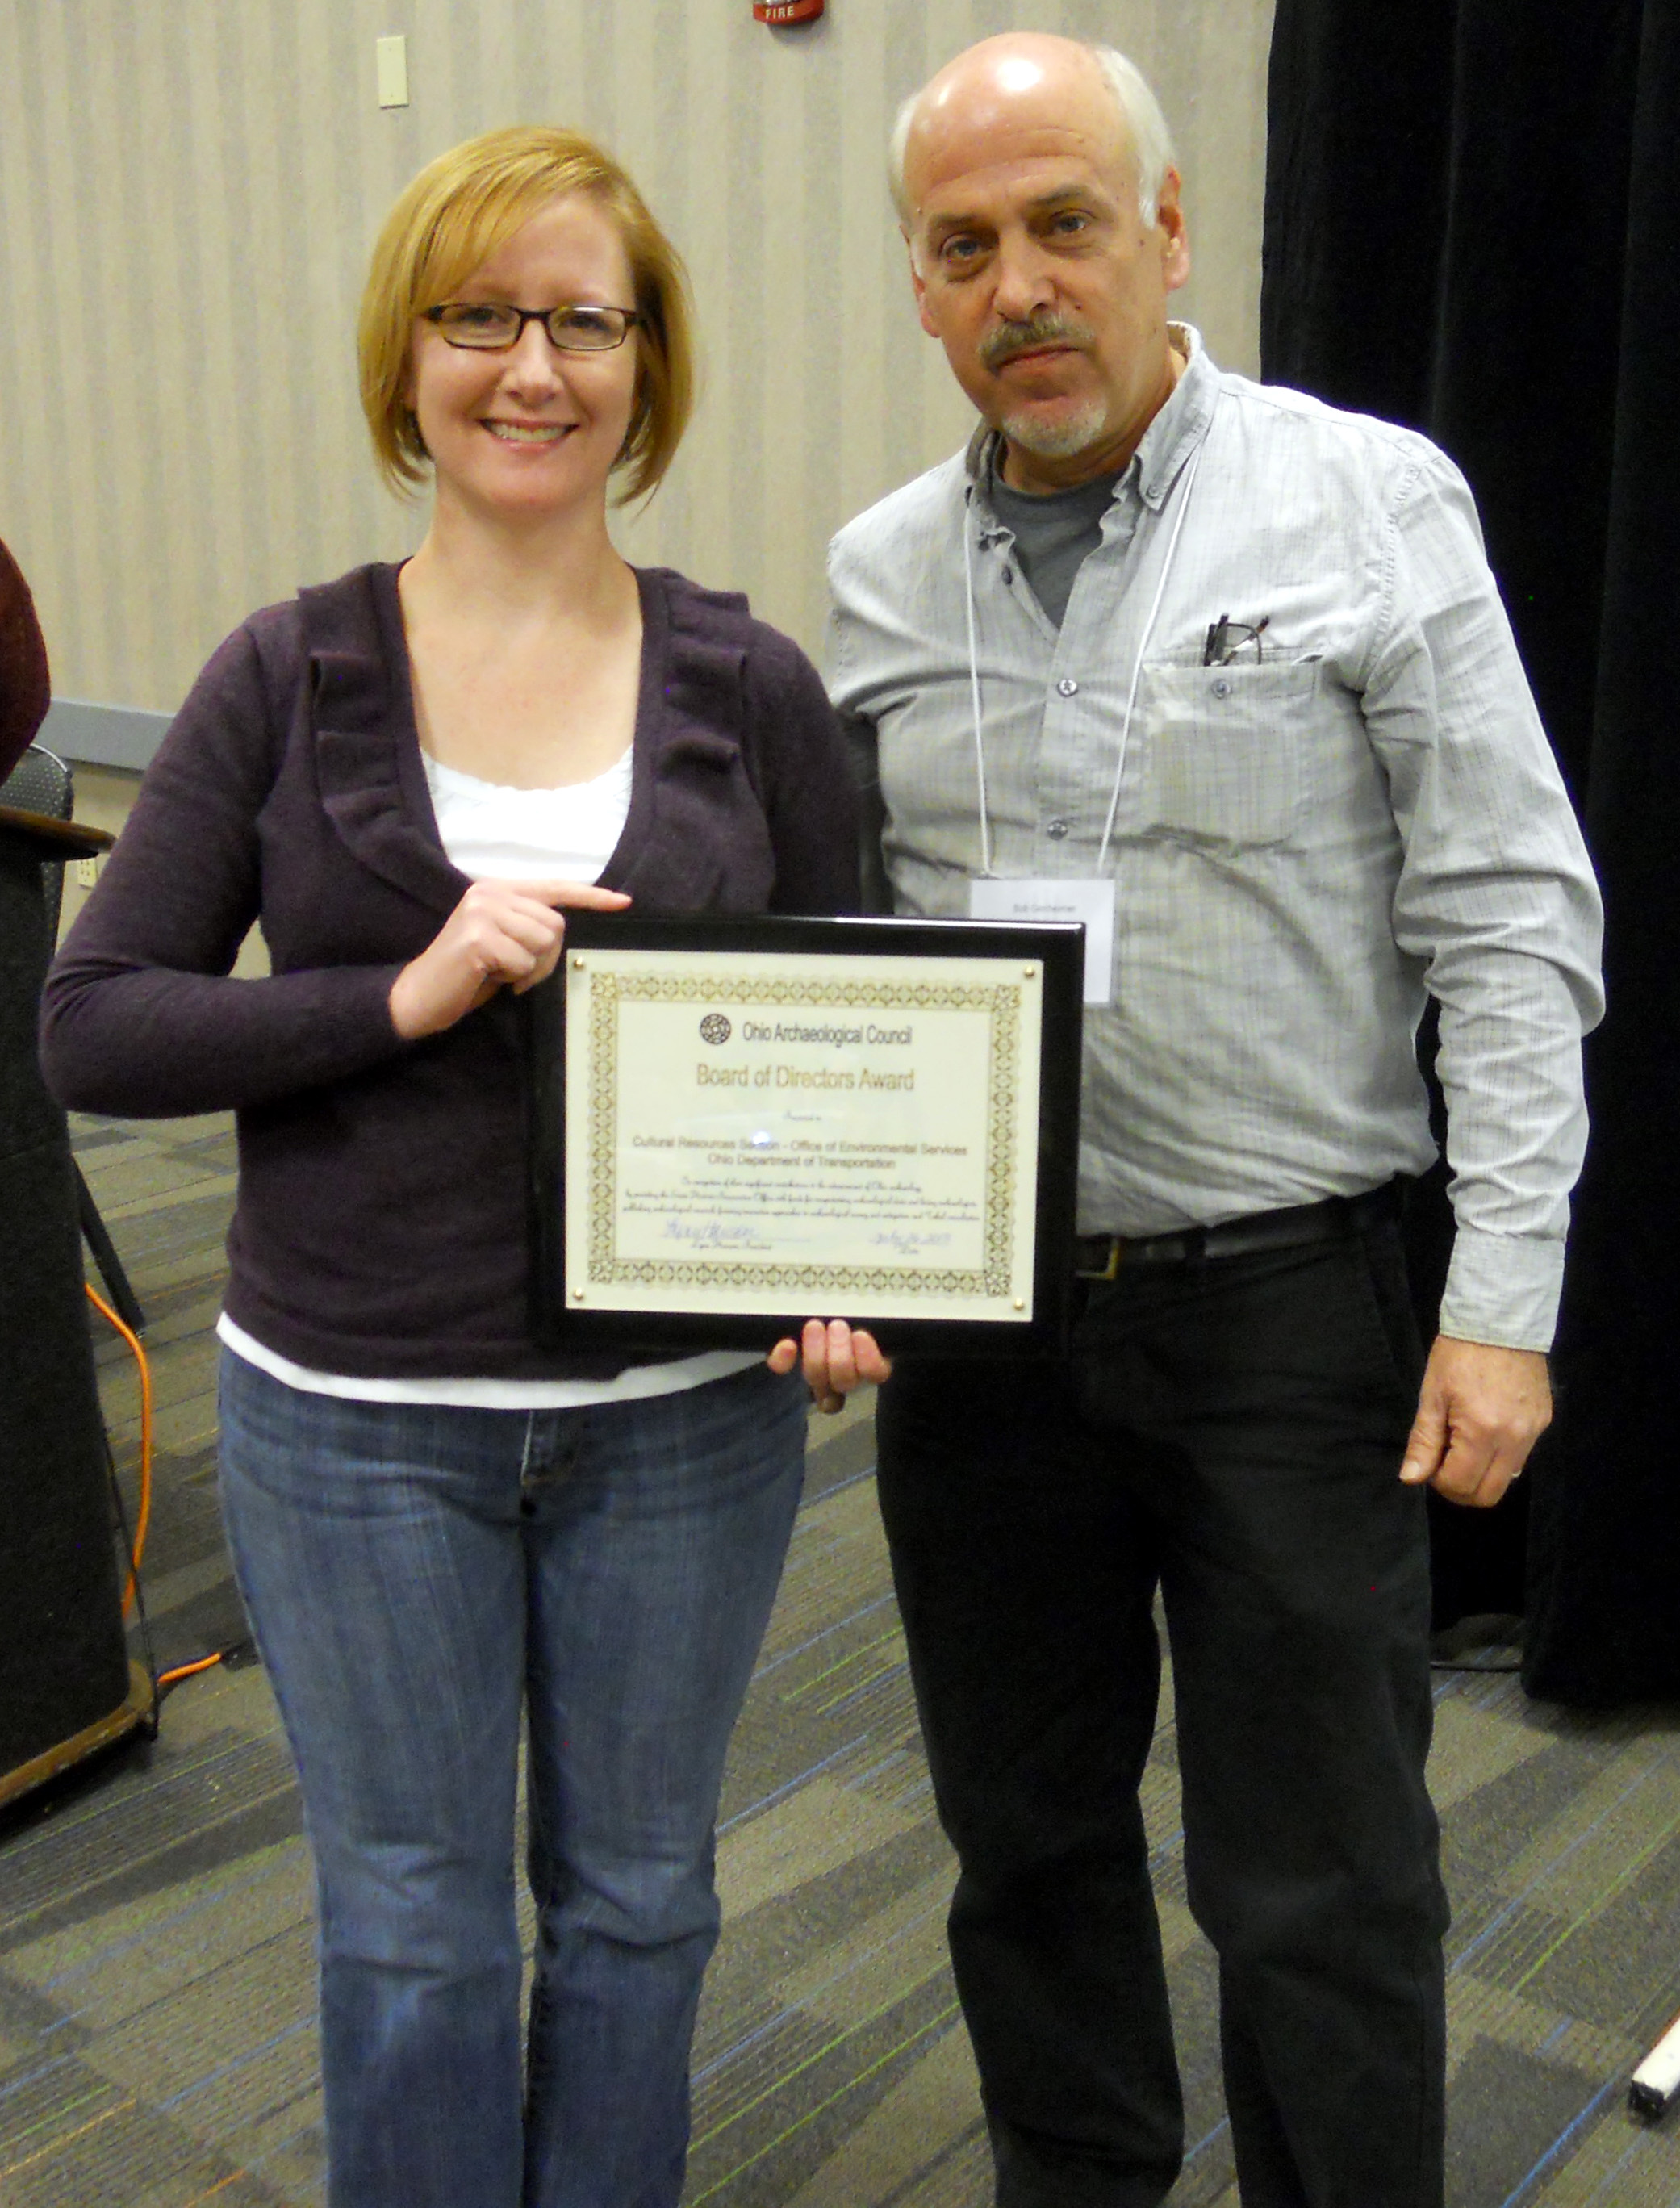 The OAC Board of Directors Award presented to Erica Schneider by President Bob Genheimer